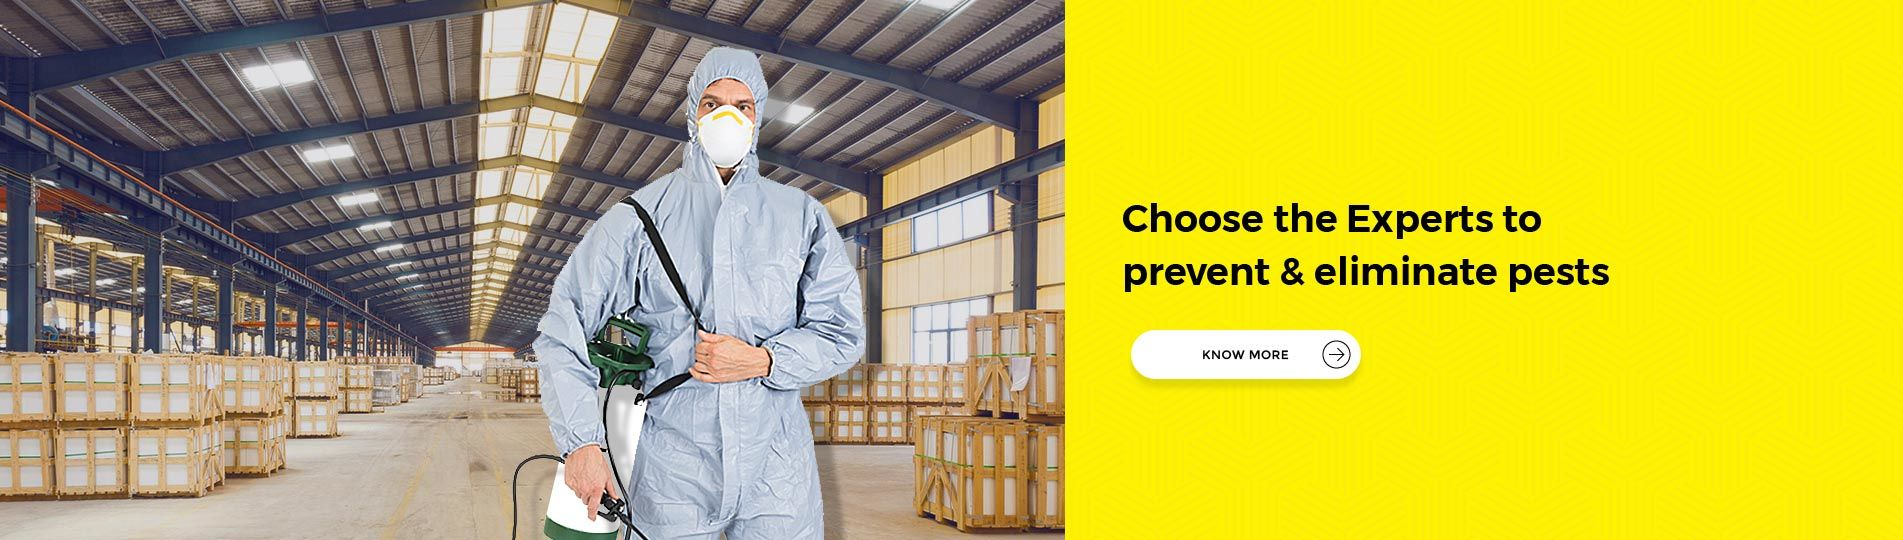 Looking for commercial pest control services in India